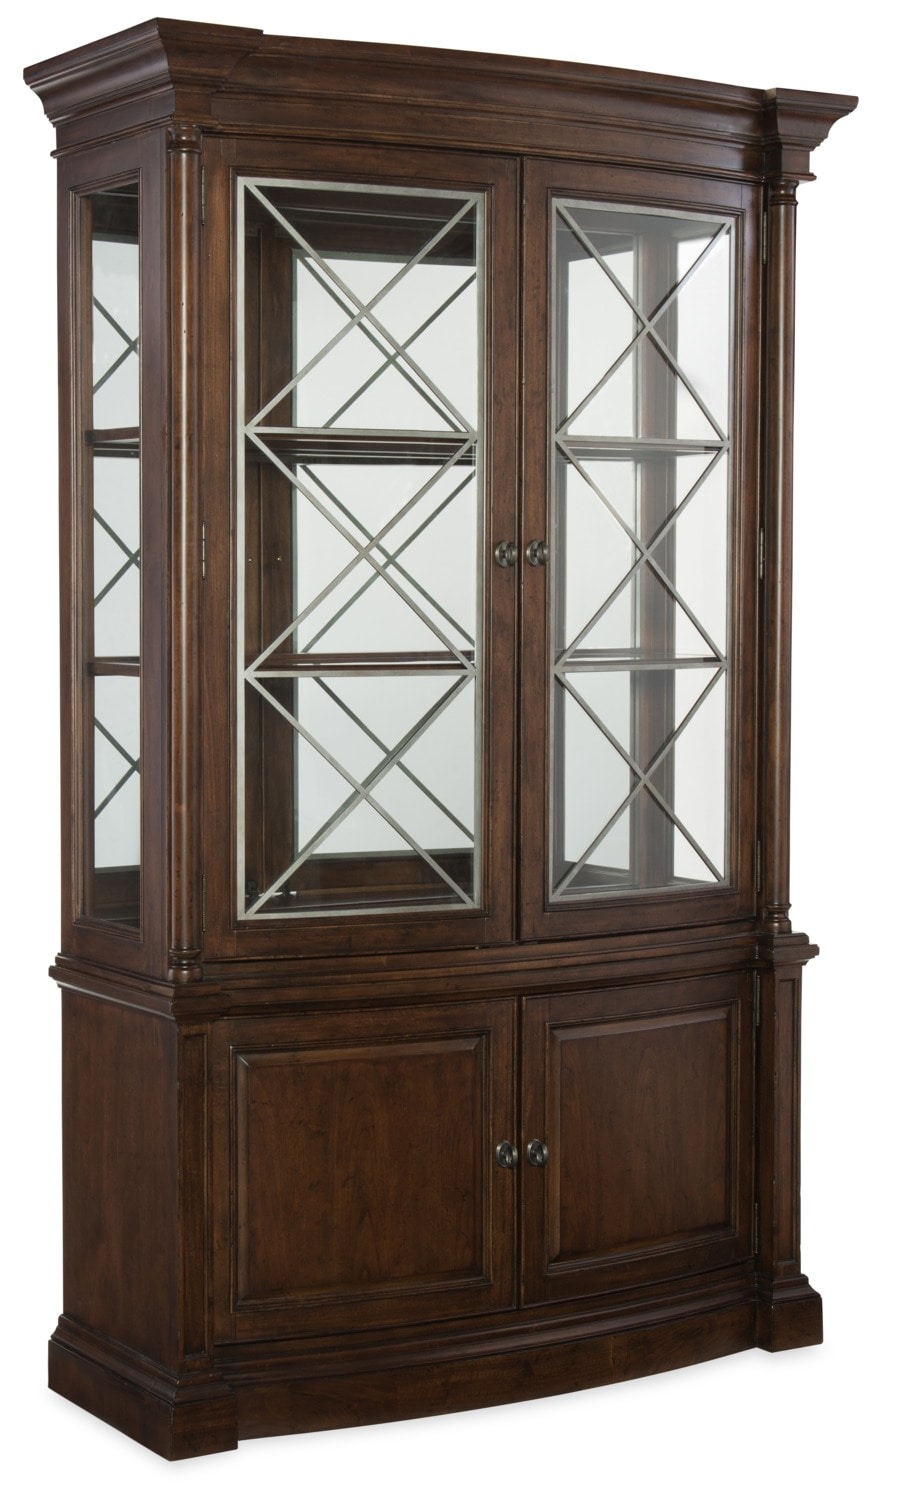 Dining Room Furniture - Rachael Ray Upstate Display Cabinet  - Cherry